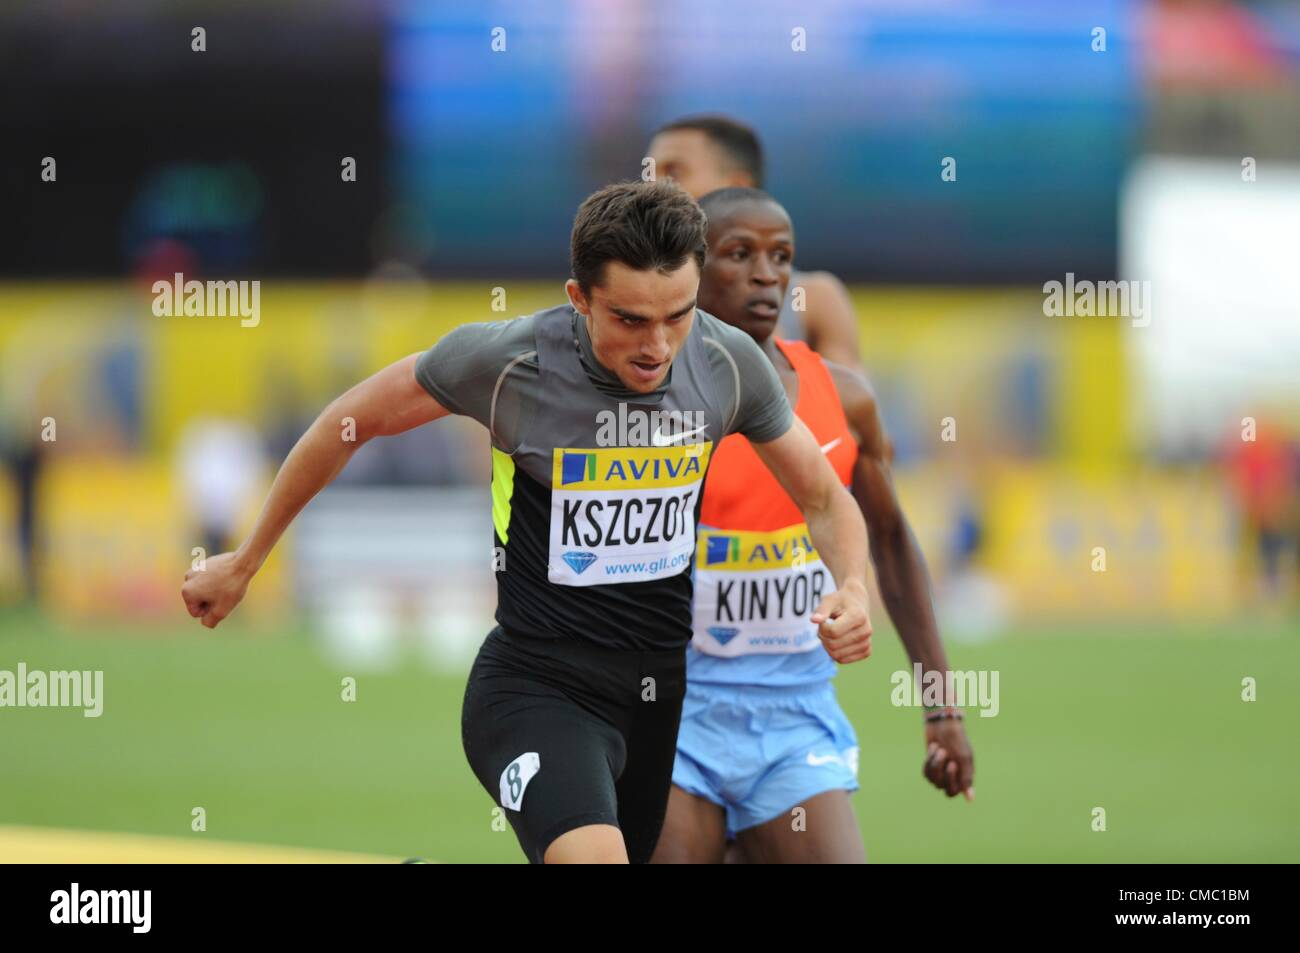 14.07.2012 Crystal Palace, London ENGLAND. , Adam Kszczot wins the 800m Final at the Aviva Grand Prix at the Crystal - Stock Image